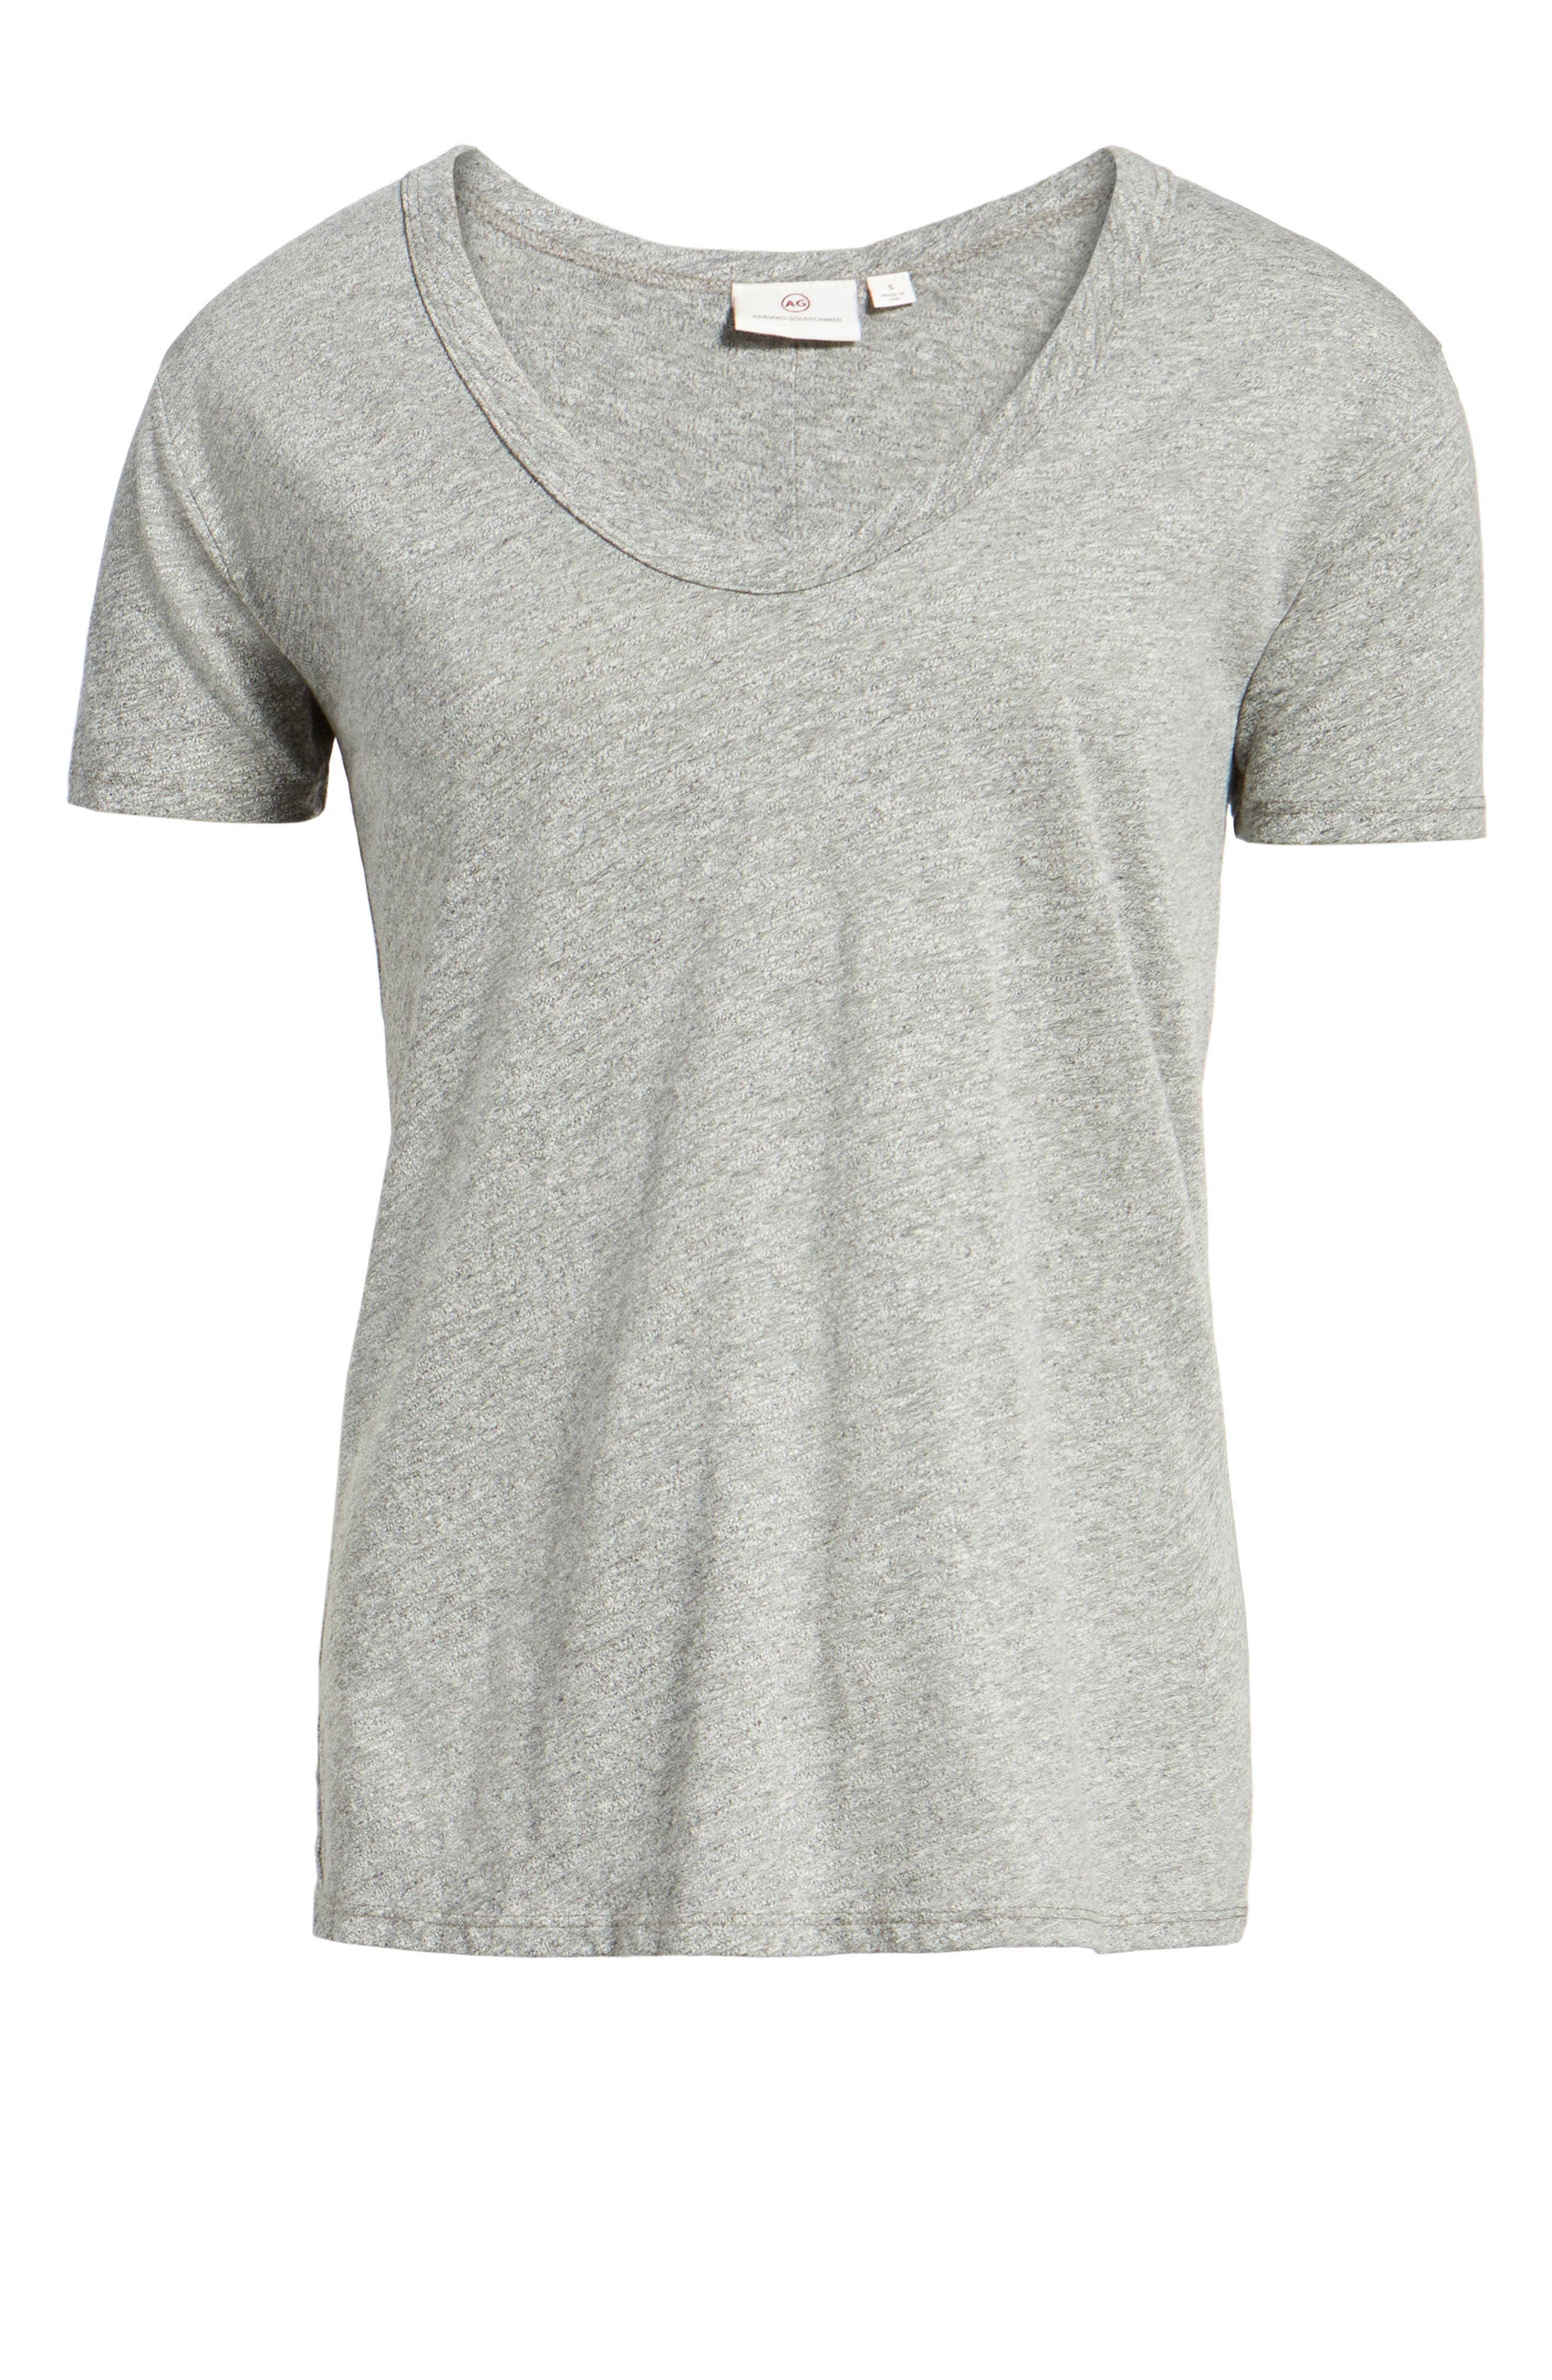 Henson Tee,                             Alternate thumbnail 5, color,                             Speckled Heather Grey